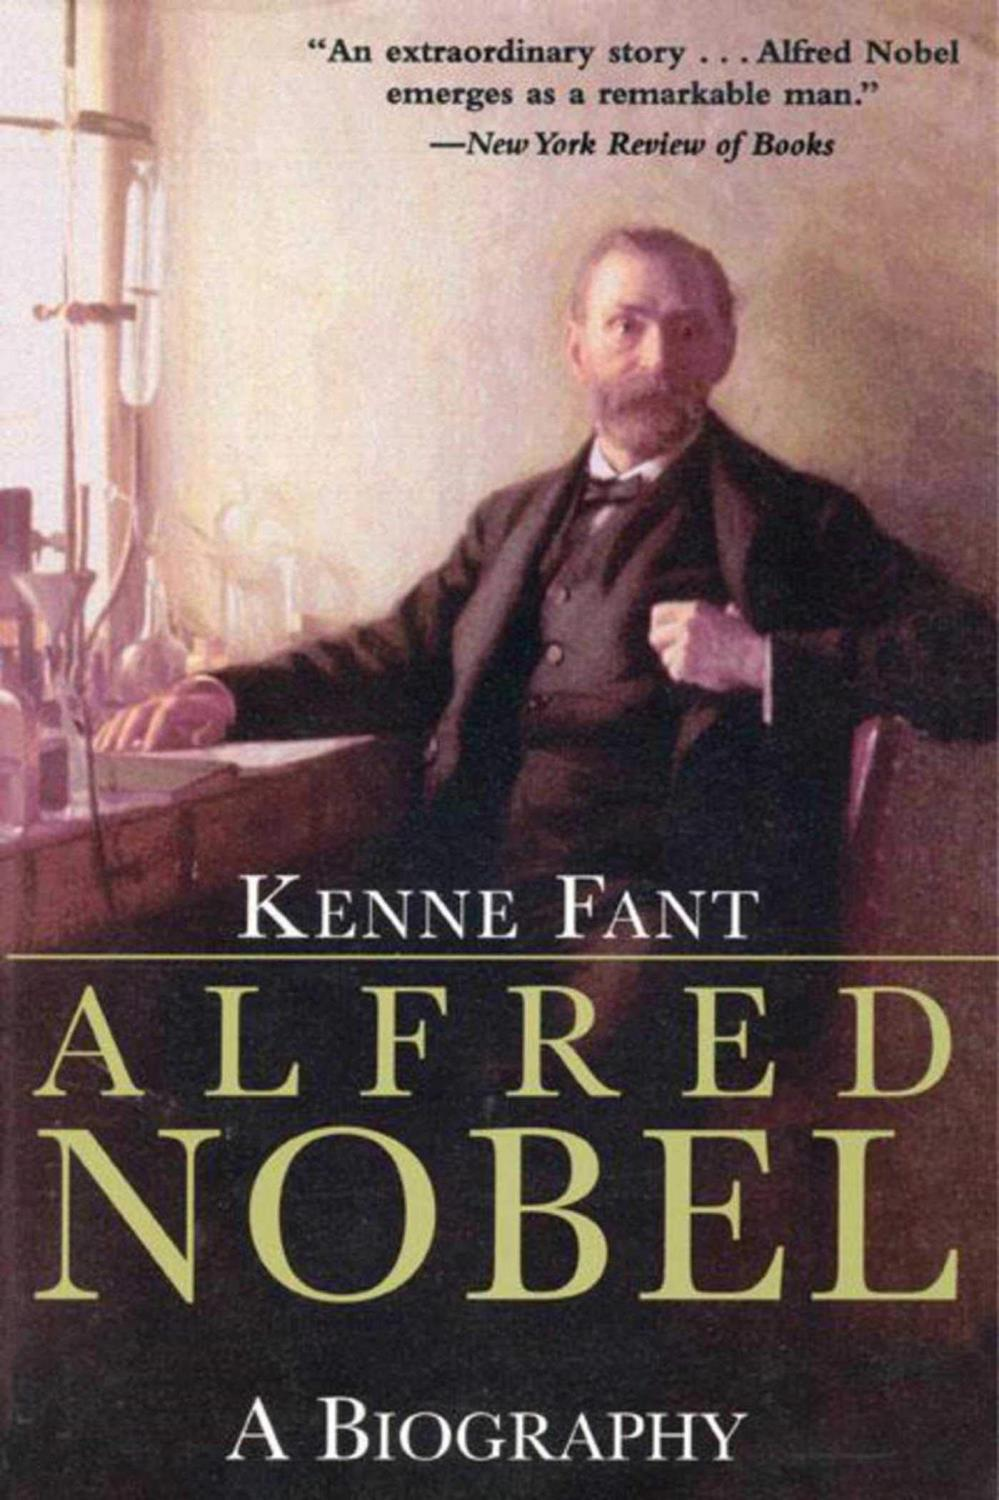 ALFRED NOBEL A BIOGRAPHY   KENNE FANT